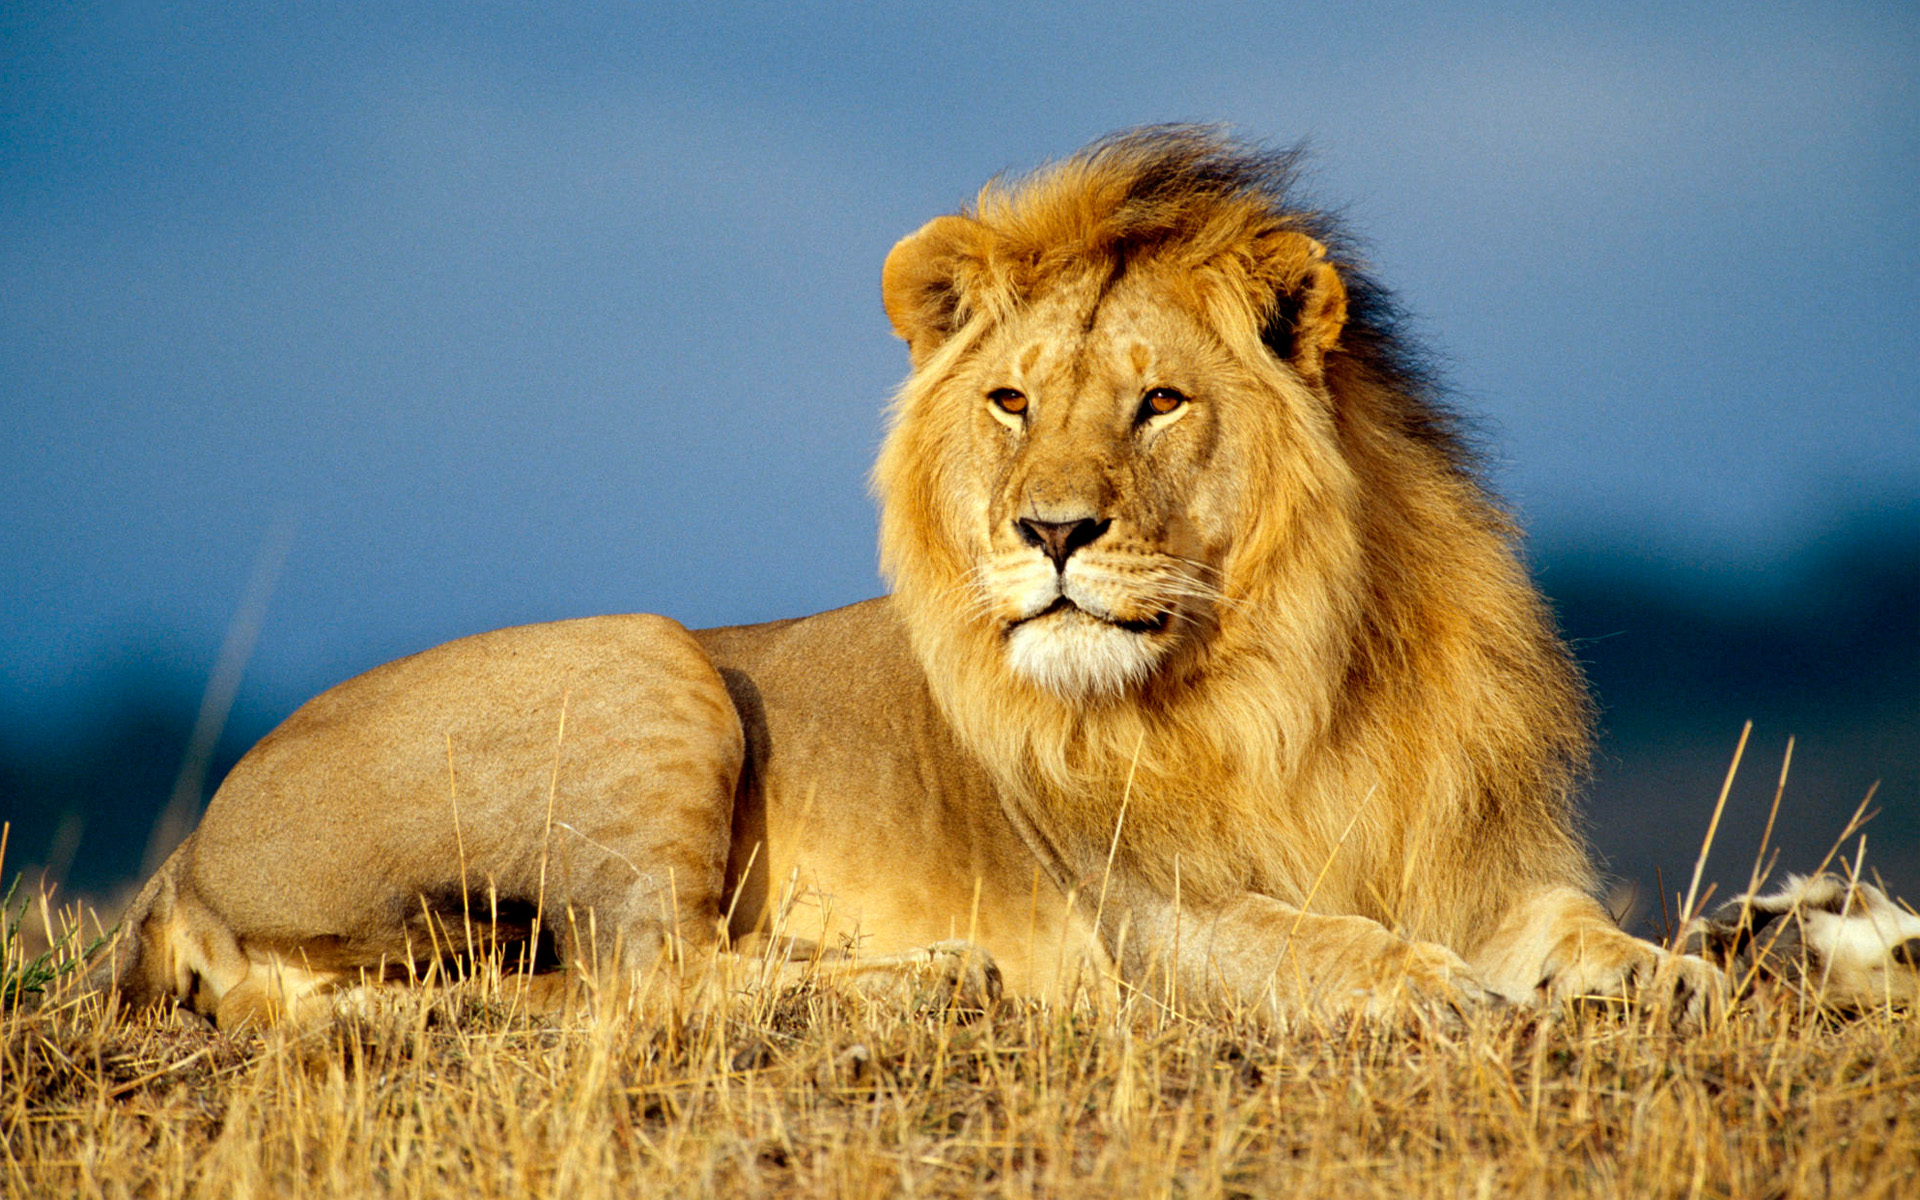 Masast Aslan Resimleri   HD Lion Wallpapers Wallpapers Rooteto 1920x1200